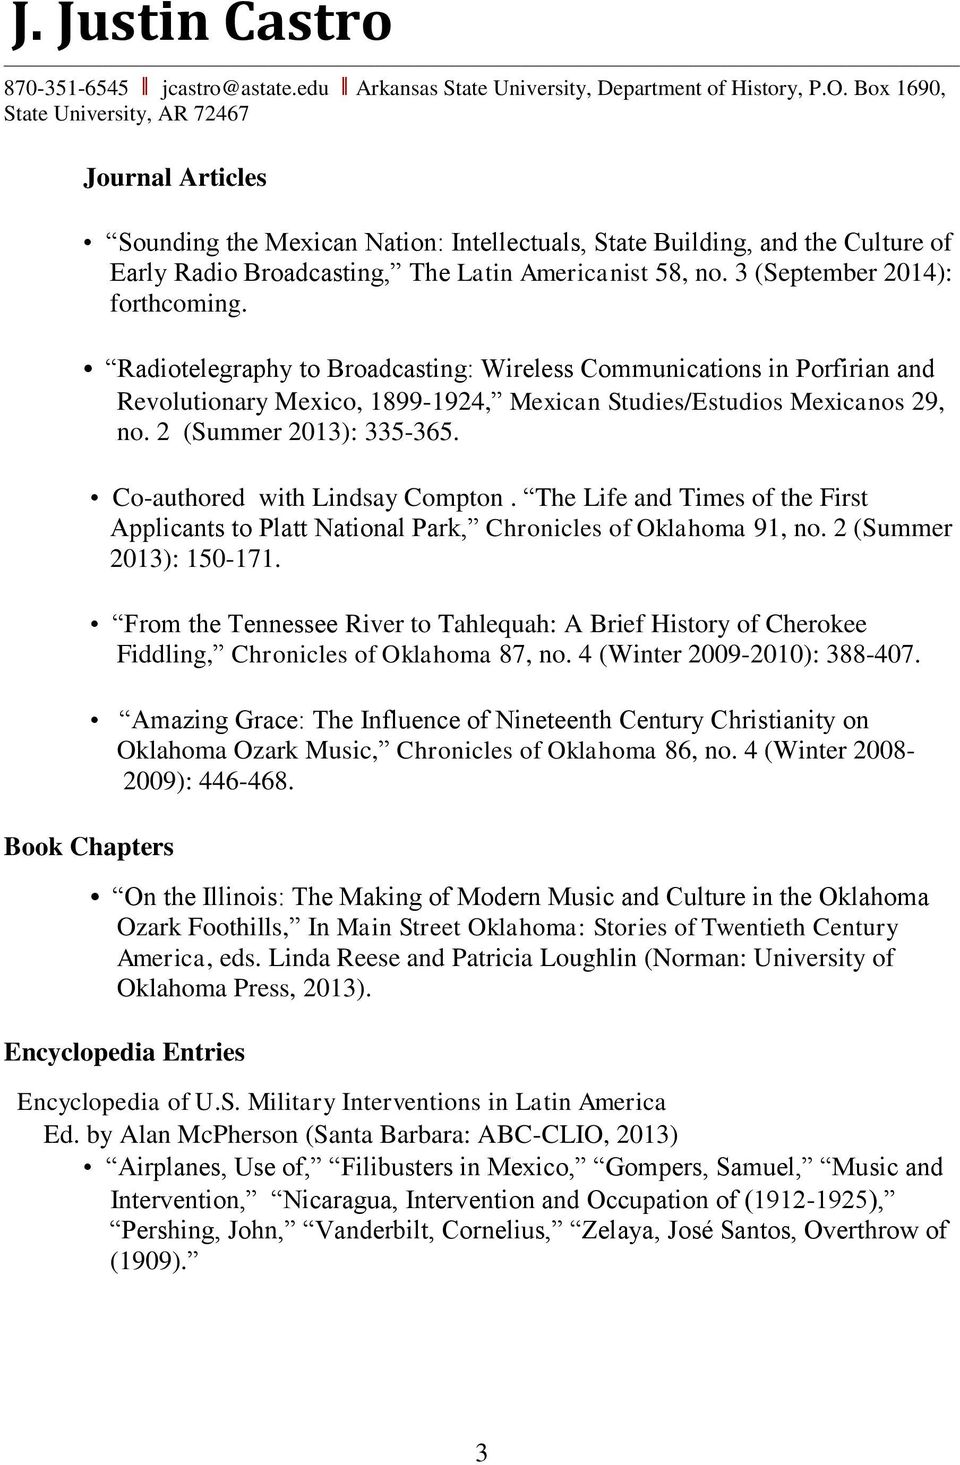 Co-authored with Lindsay Compton. The Life and Times of the First Applicants to Platt National Park, Chronicles of Oklahoma 91, no. 2 (Summer 2013): 150-171.